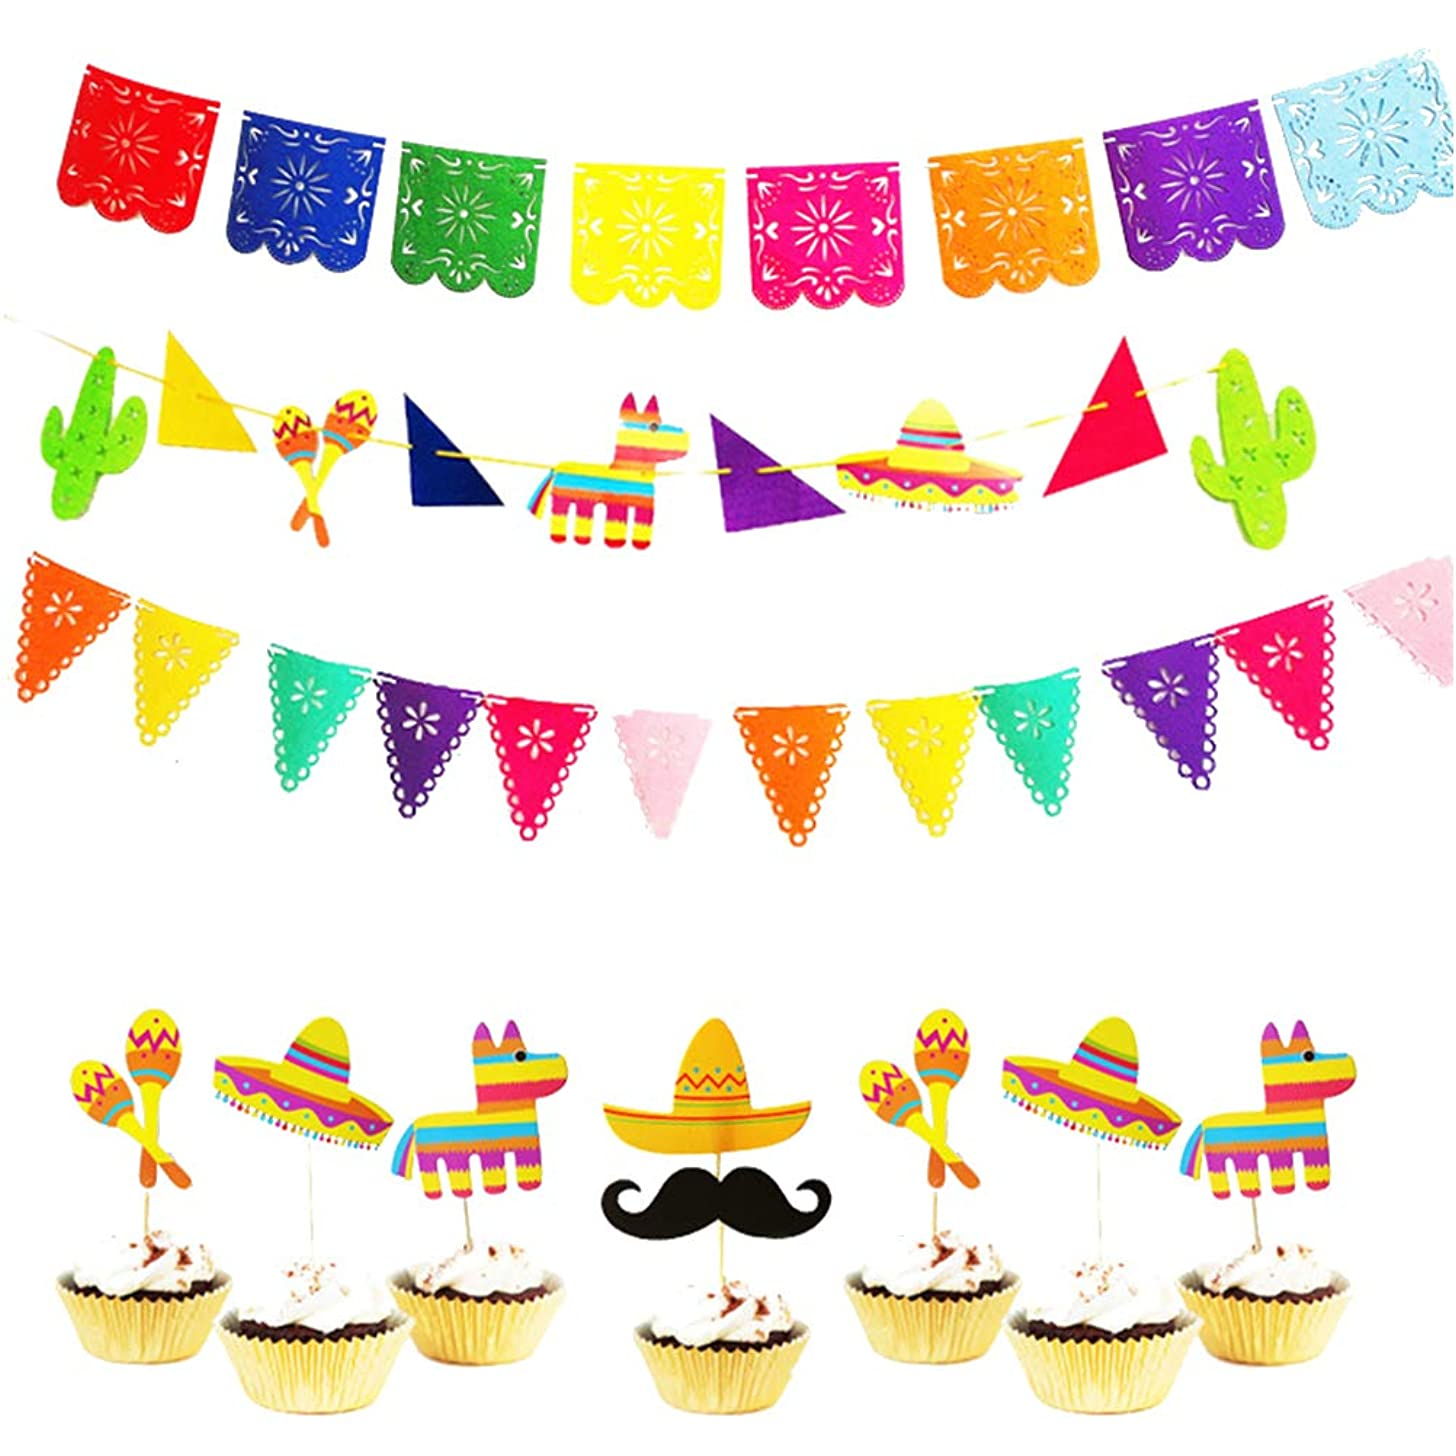 Amosfun Mexican Papel Picado Party Decorations Supplies Set 3pcs Banners 8pcs Mexican Custom Pattern Cake Toppers for Hawaii Wedding Birthday Party